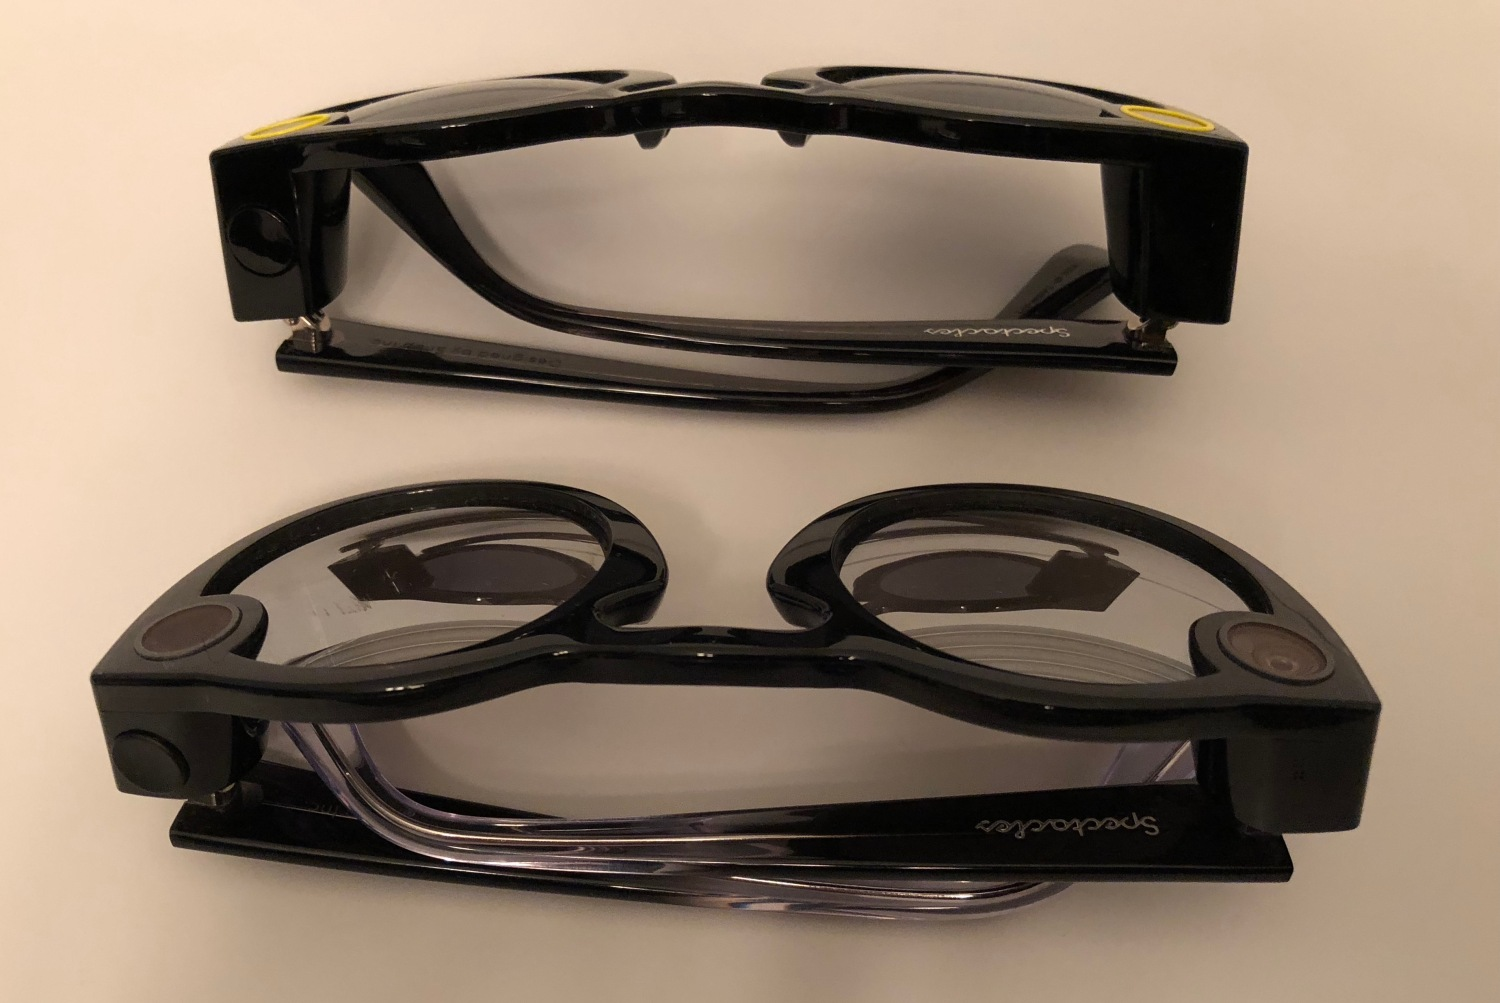 83237dc4cc Snapchat Spectacles hardware v1 vs v2